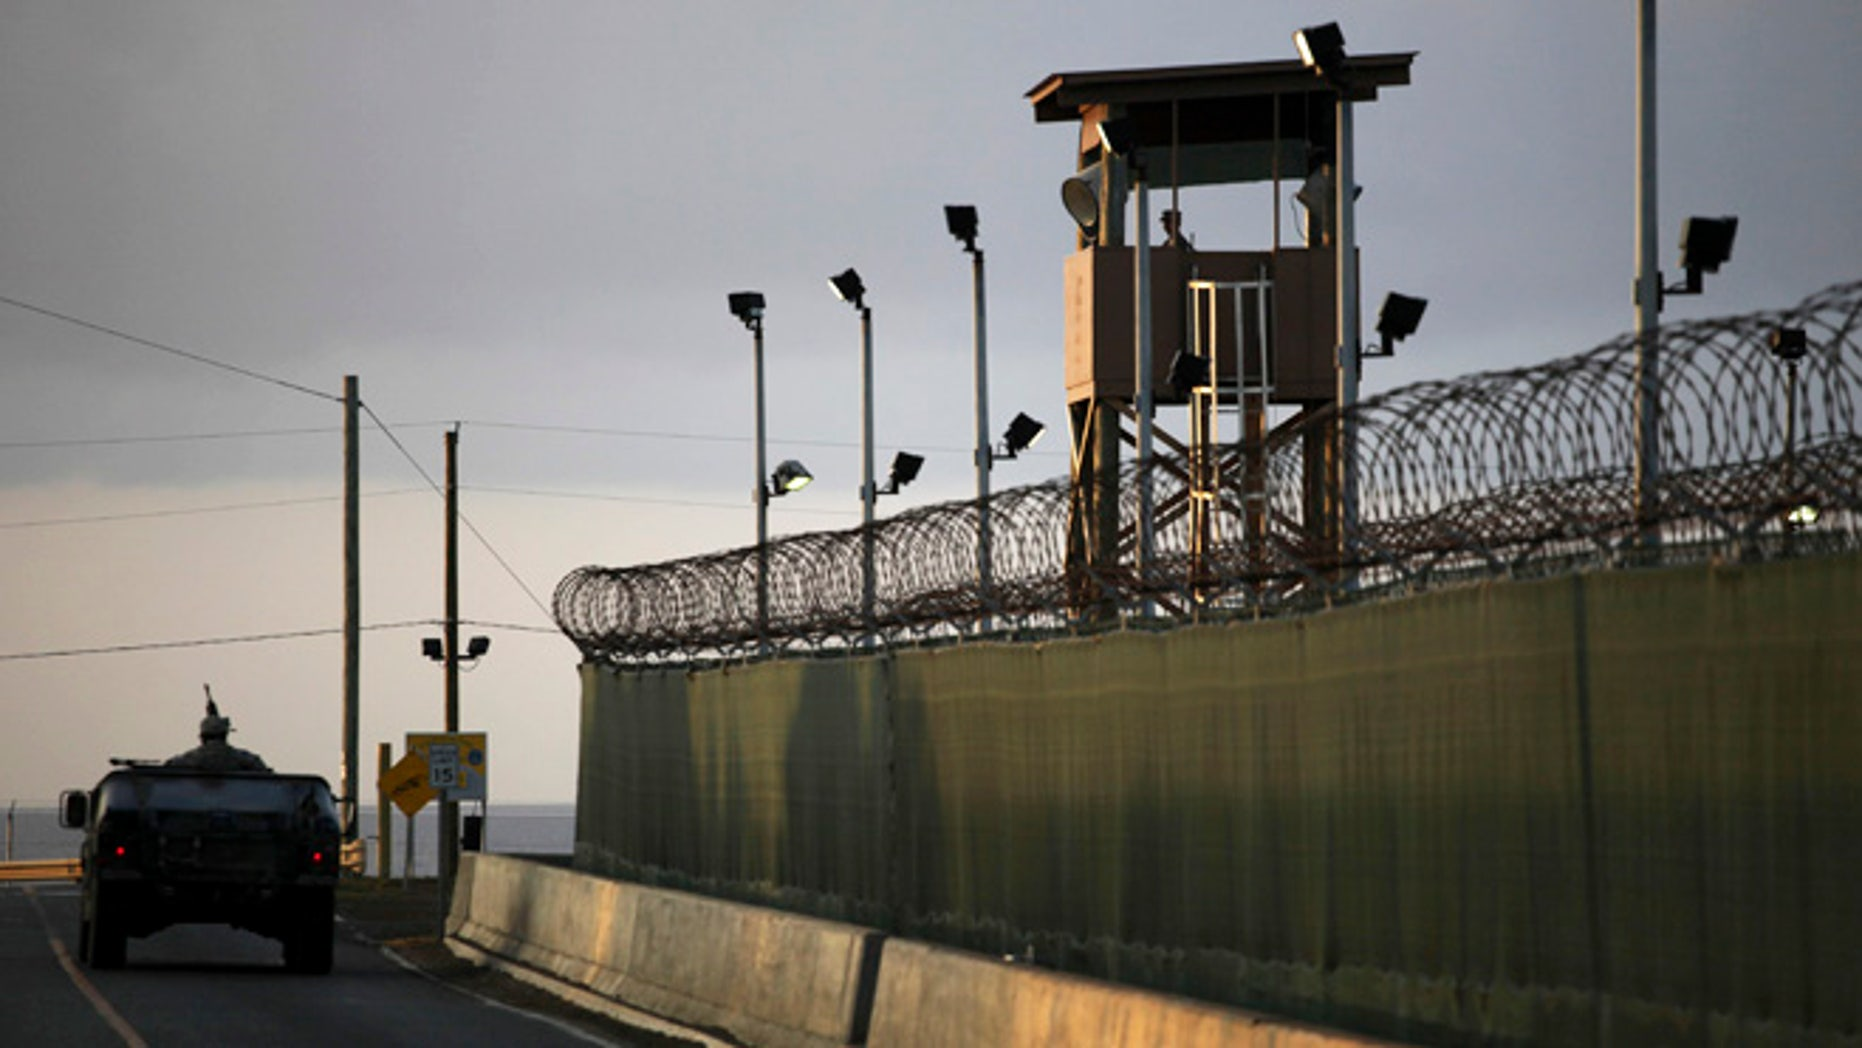 In this March 30, 2010 file photo, reviewed by the U.S. military, a U.S. trooper stands in the turret of a vehicle with a machine gun, left, as a guard looks out from a tower at the detention facility of Guantanamo Bay U.S. Naval Base in Cuba. The U.S. government has dropped its opposition to the release of a Guantanamo Bay prisoner, Ibrahim Idris, who suffers from severe psychological and physical illnesses. He will likely go back to his native Sudan.